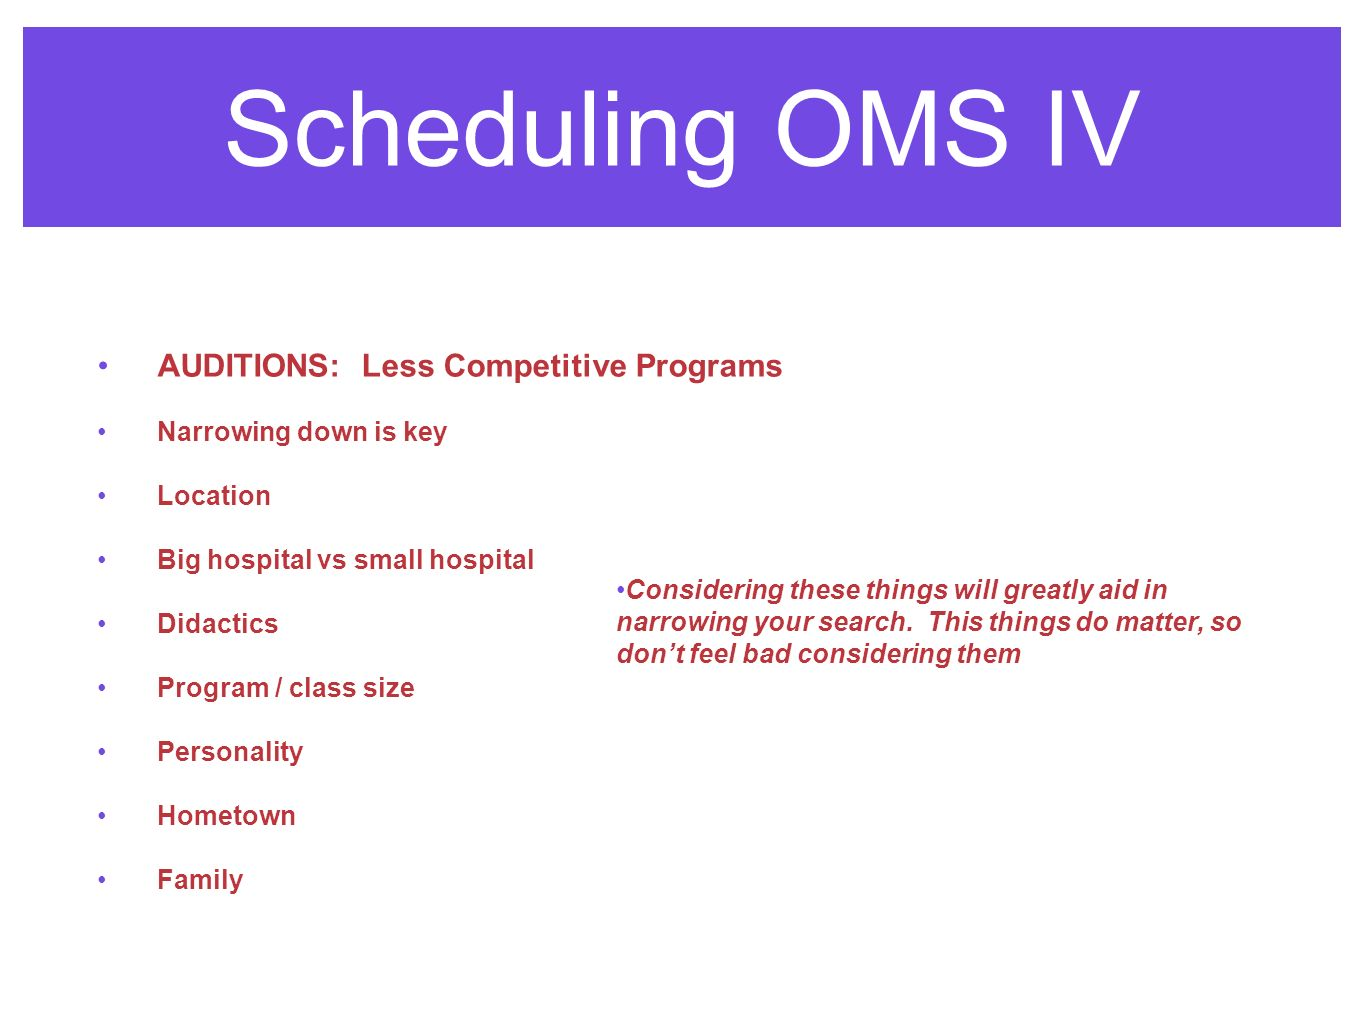 Scheduling OMS IV AUDITIONS: Less Competitive Programs Narrowing down is key Location Big hospital vs small hospital Didactics Program / class size Personality Hometown Family Considering these things will greatly aid in narrowing your search.